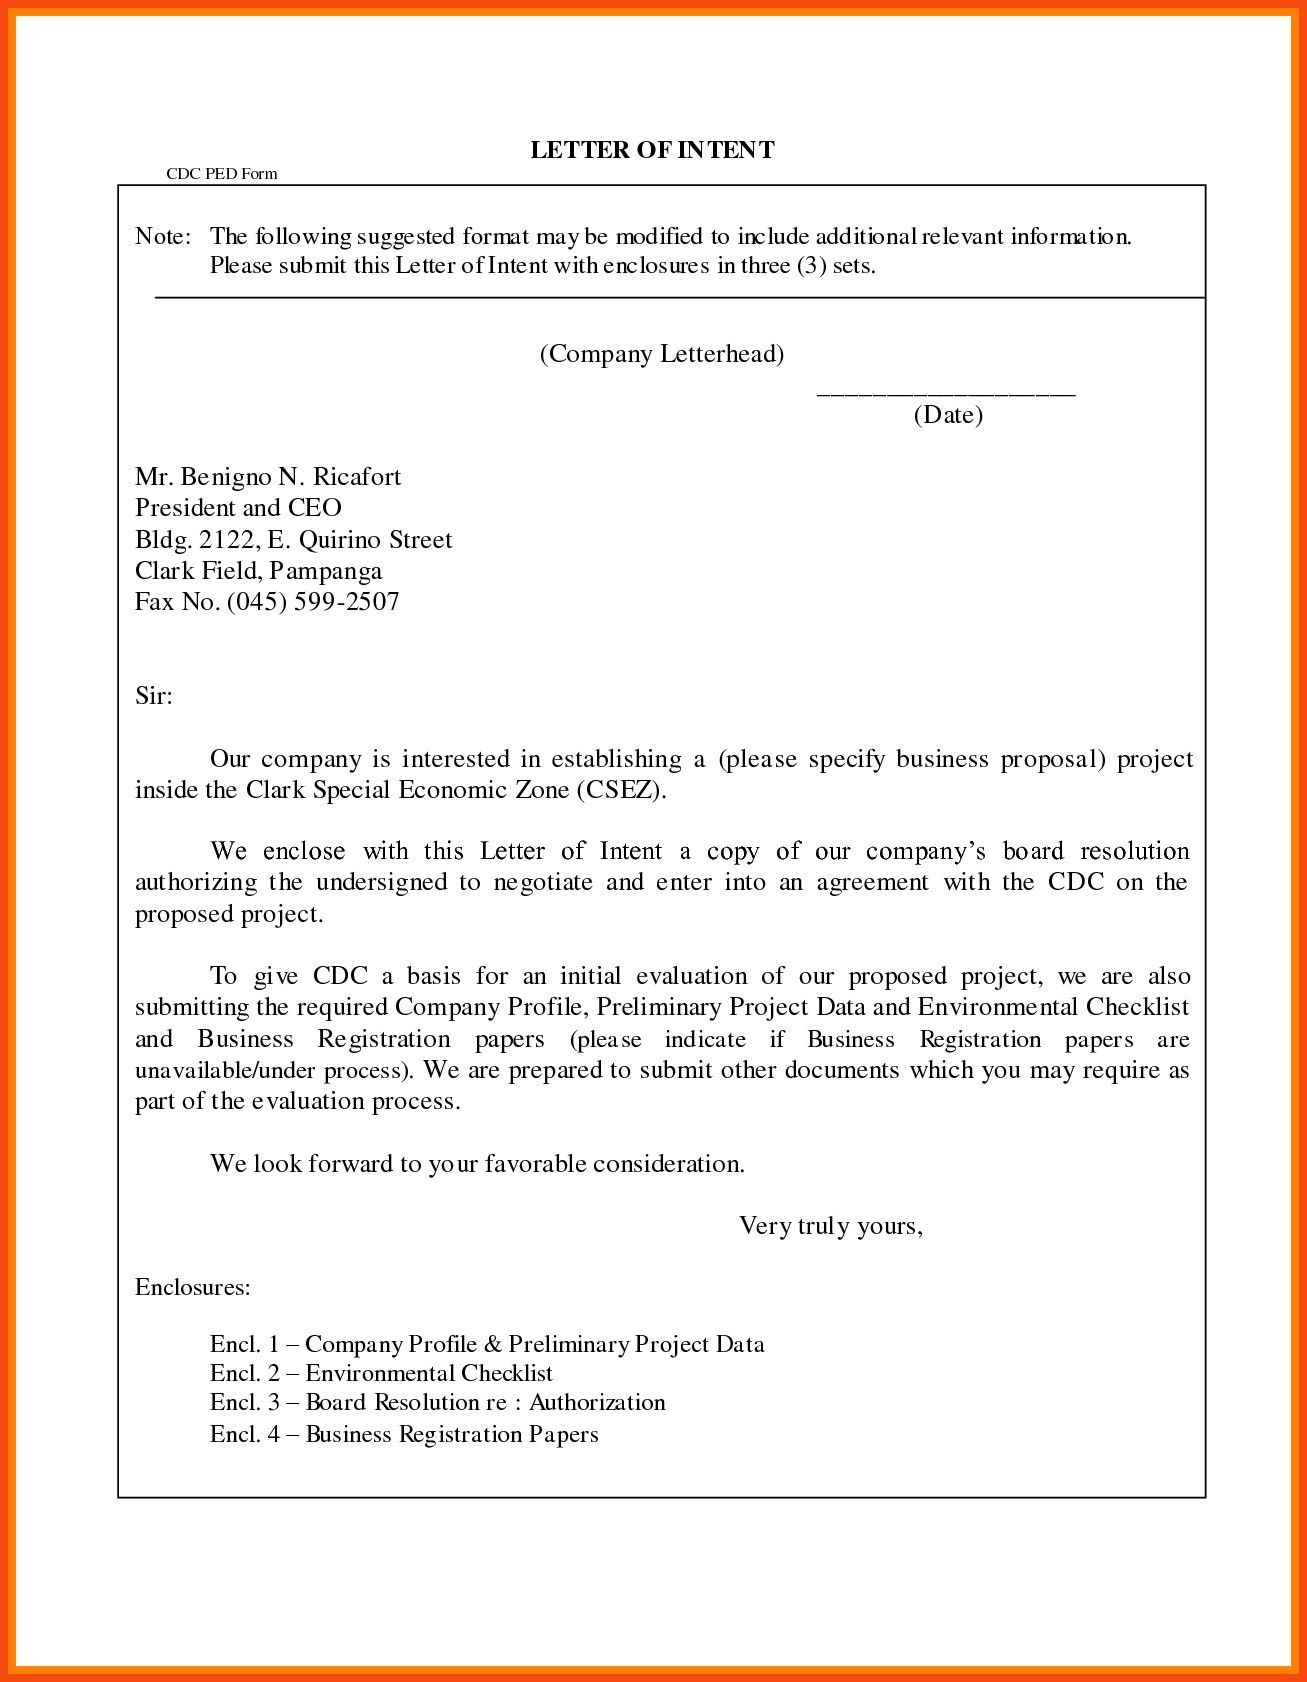 You Can See This New Format For Business Letter With Enclosure And